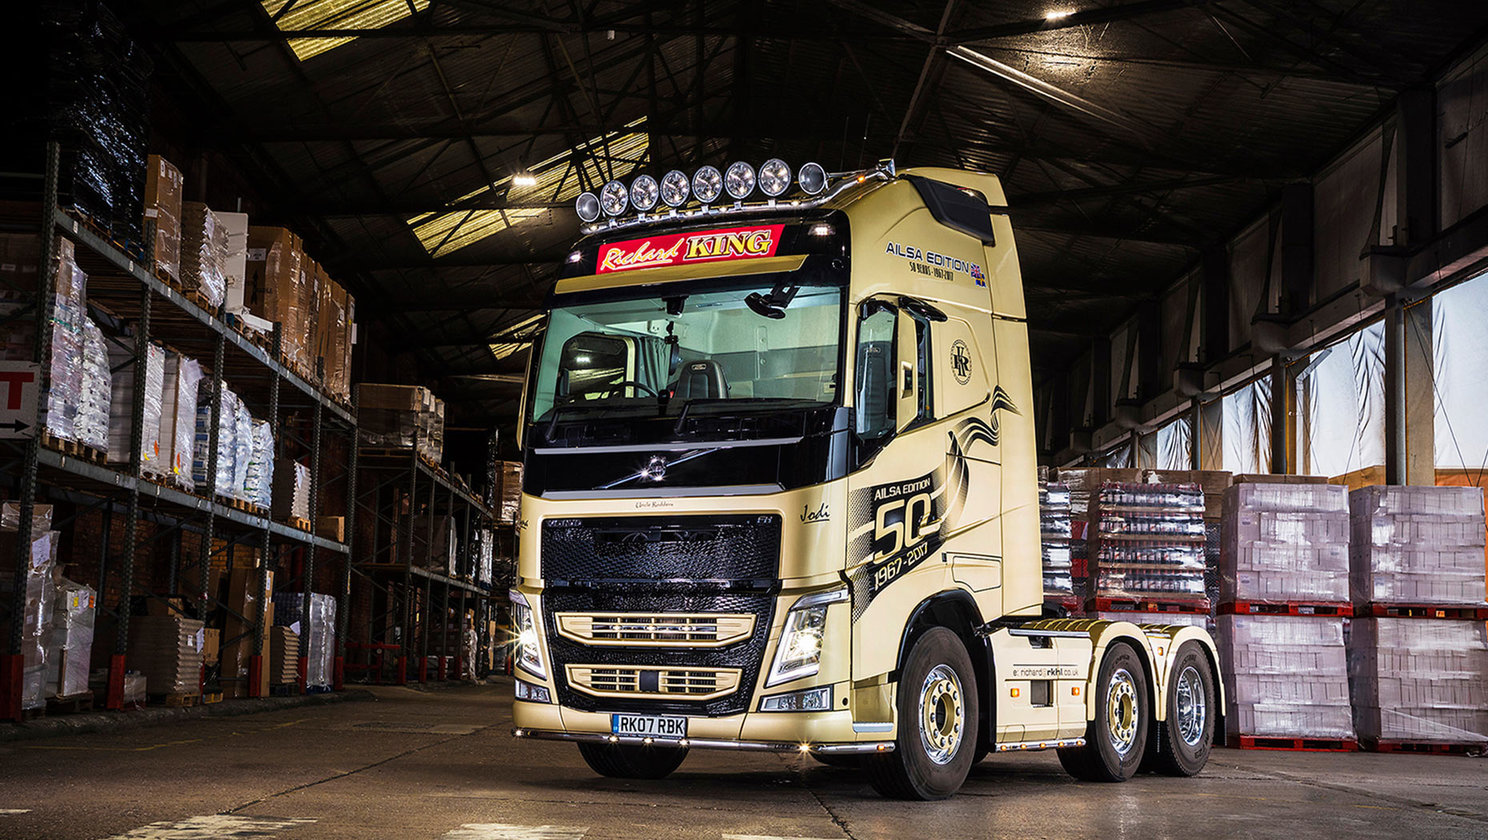 Richard King's Ailsa edition FH with I-shift dual clutch shines